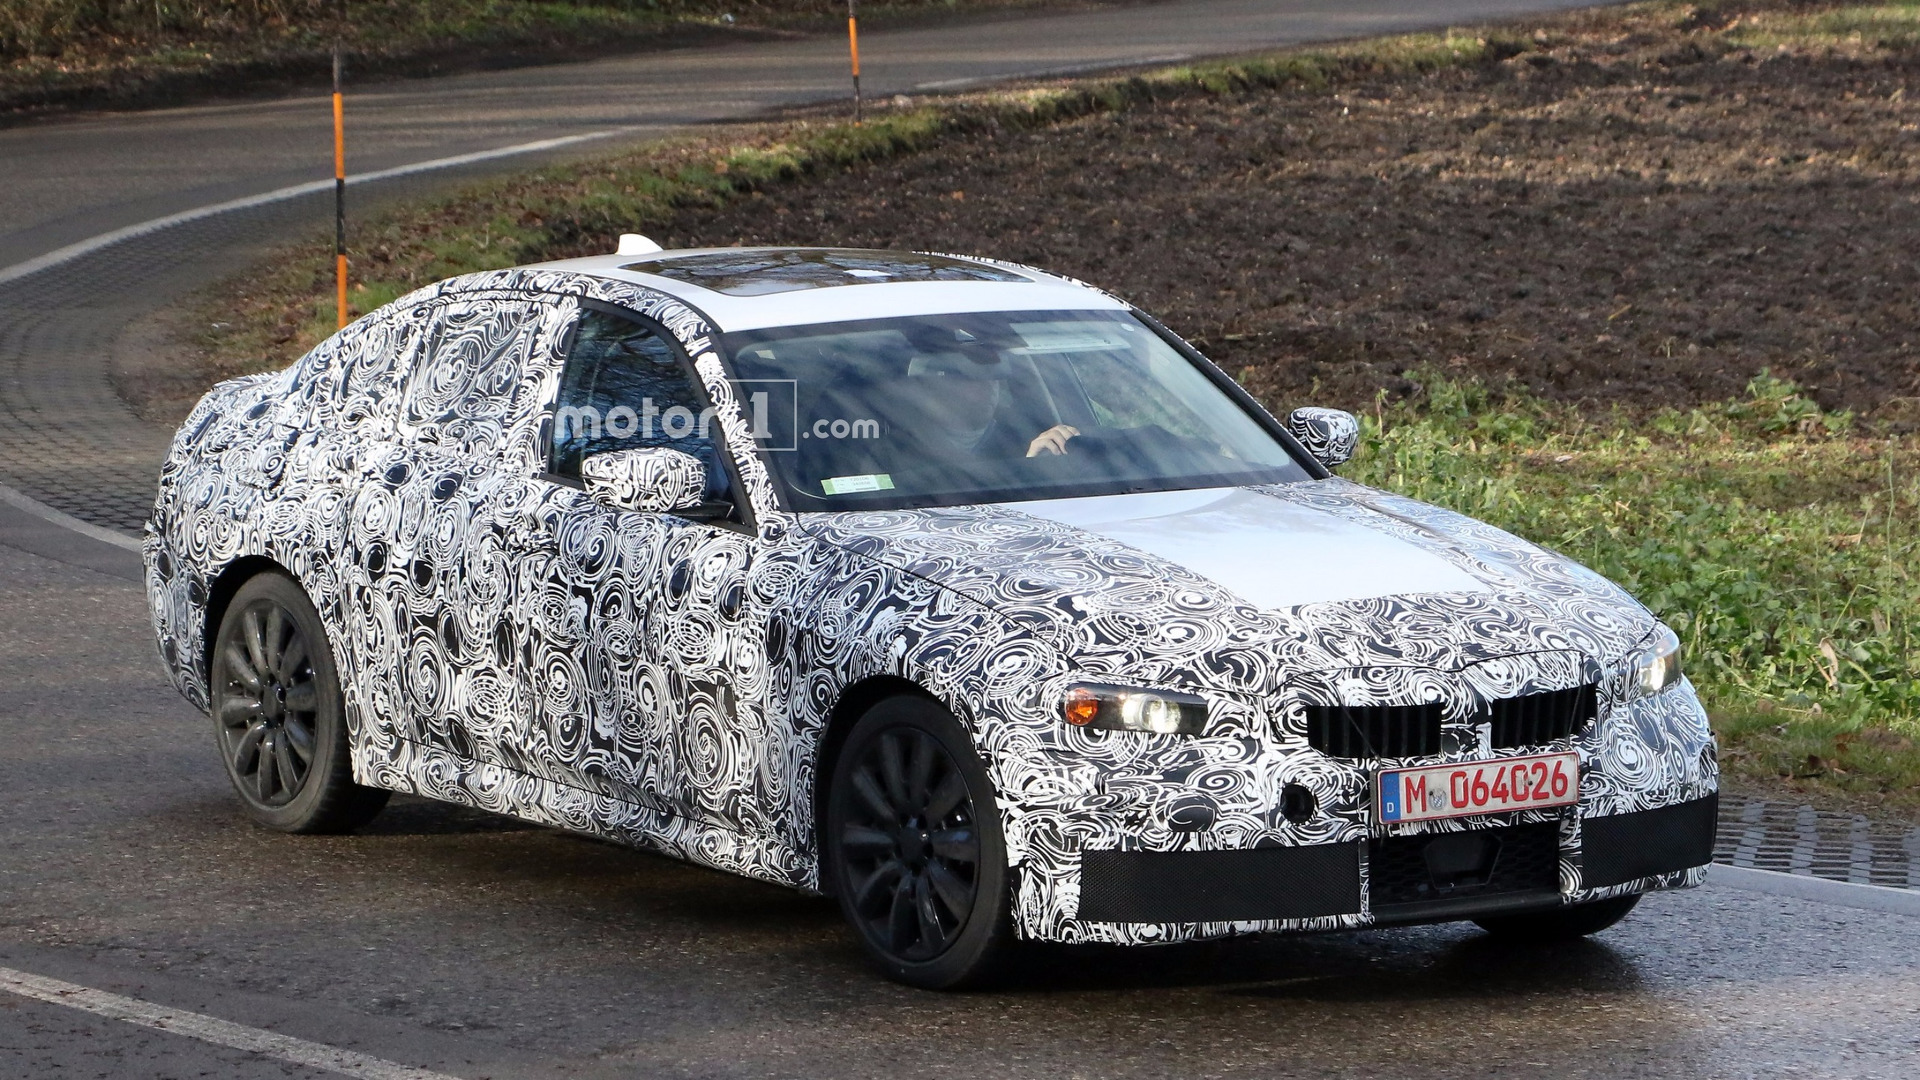 2018 Bmw 3 Series >> 2019 Bmw 3 Series Believed To Lose 88 Pounds Gain More Power